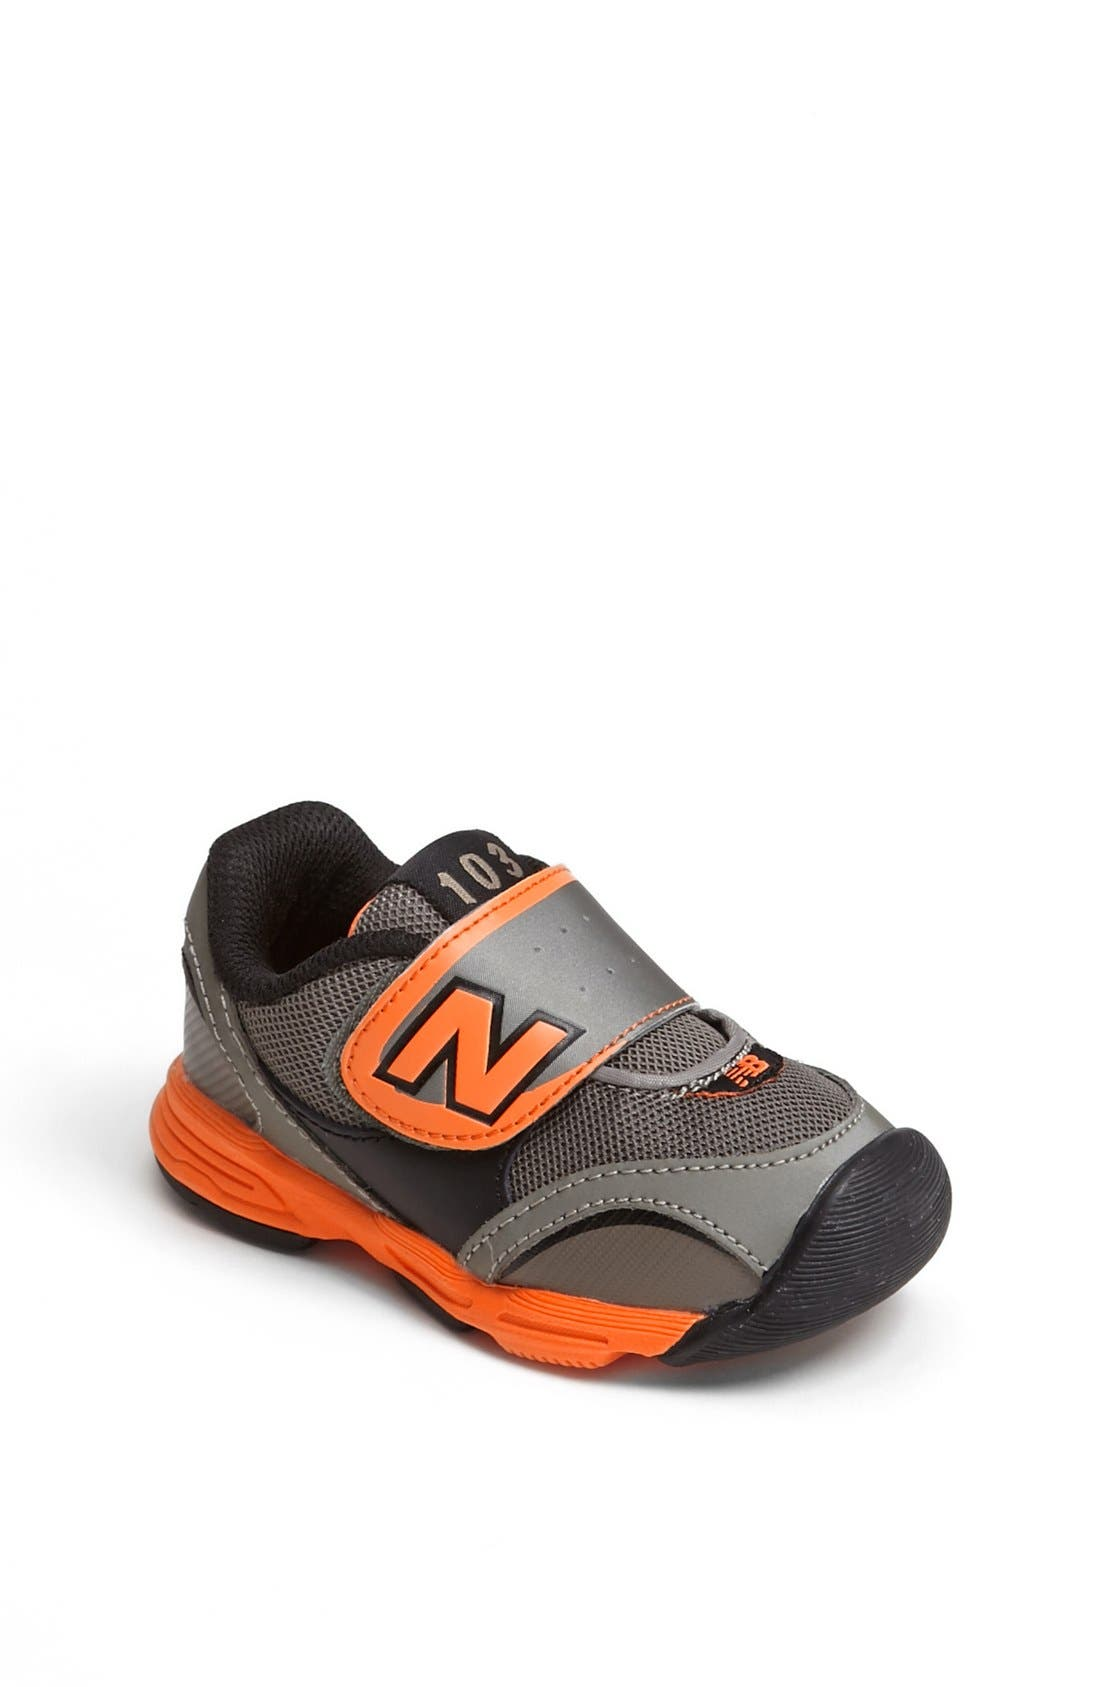 Alternate Image 1 Selected - New Balance '103' Athletic Shoe (Baby, Walker & Toddler)